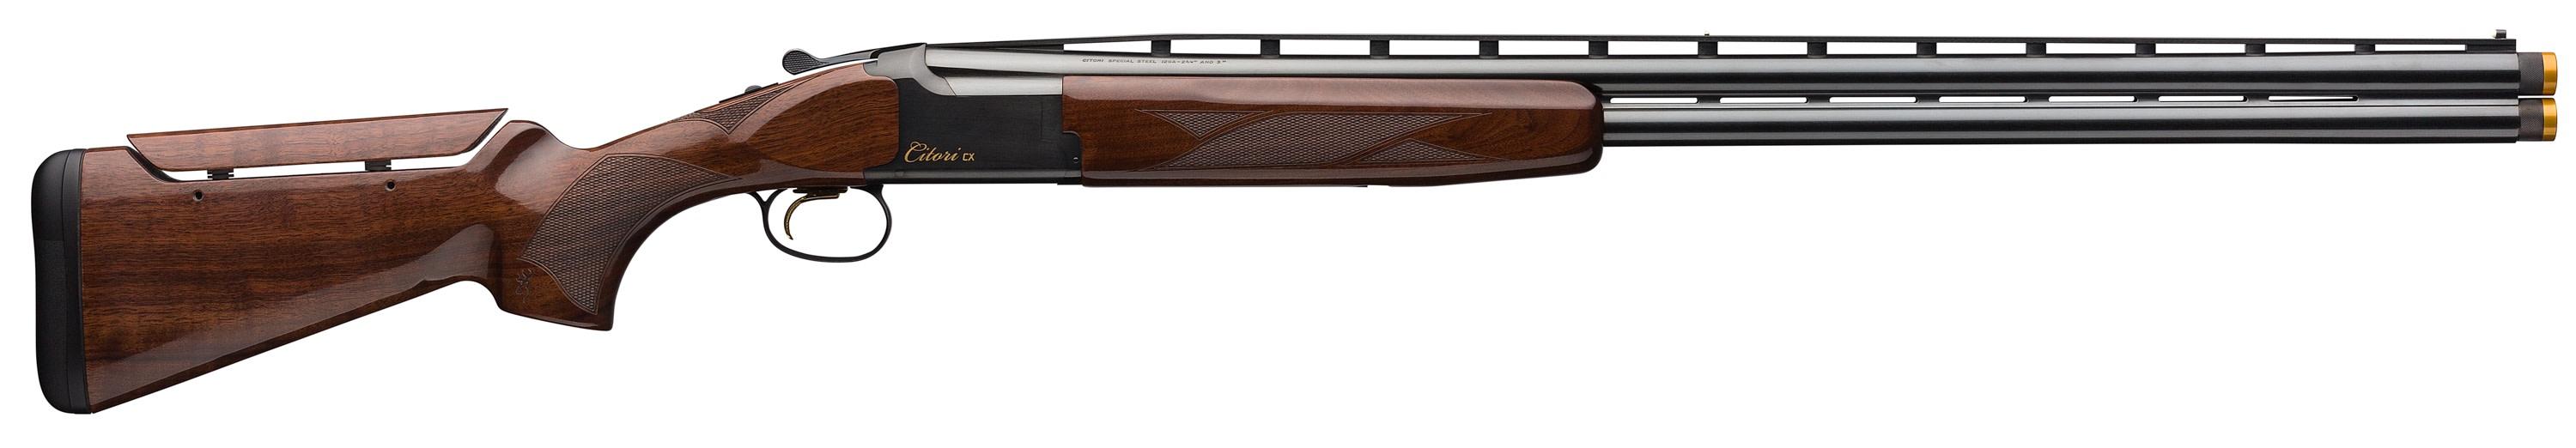 Browning Citori CX Over/Under 3'' 12 Gauge 28'' Blued Steel - American Walnut w/Adjustable Comb